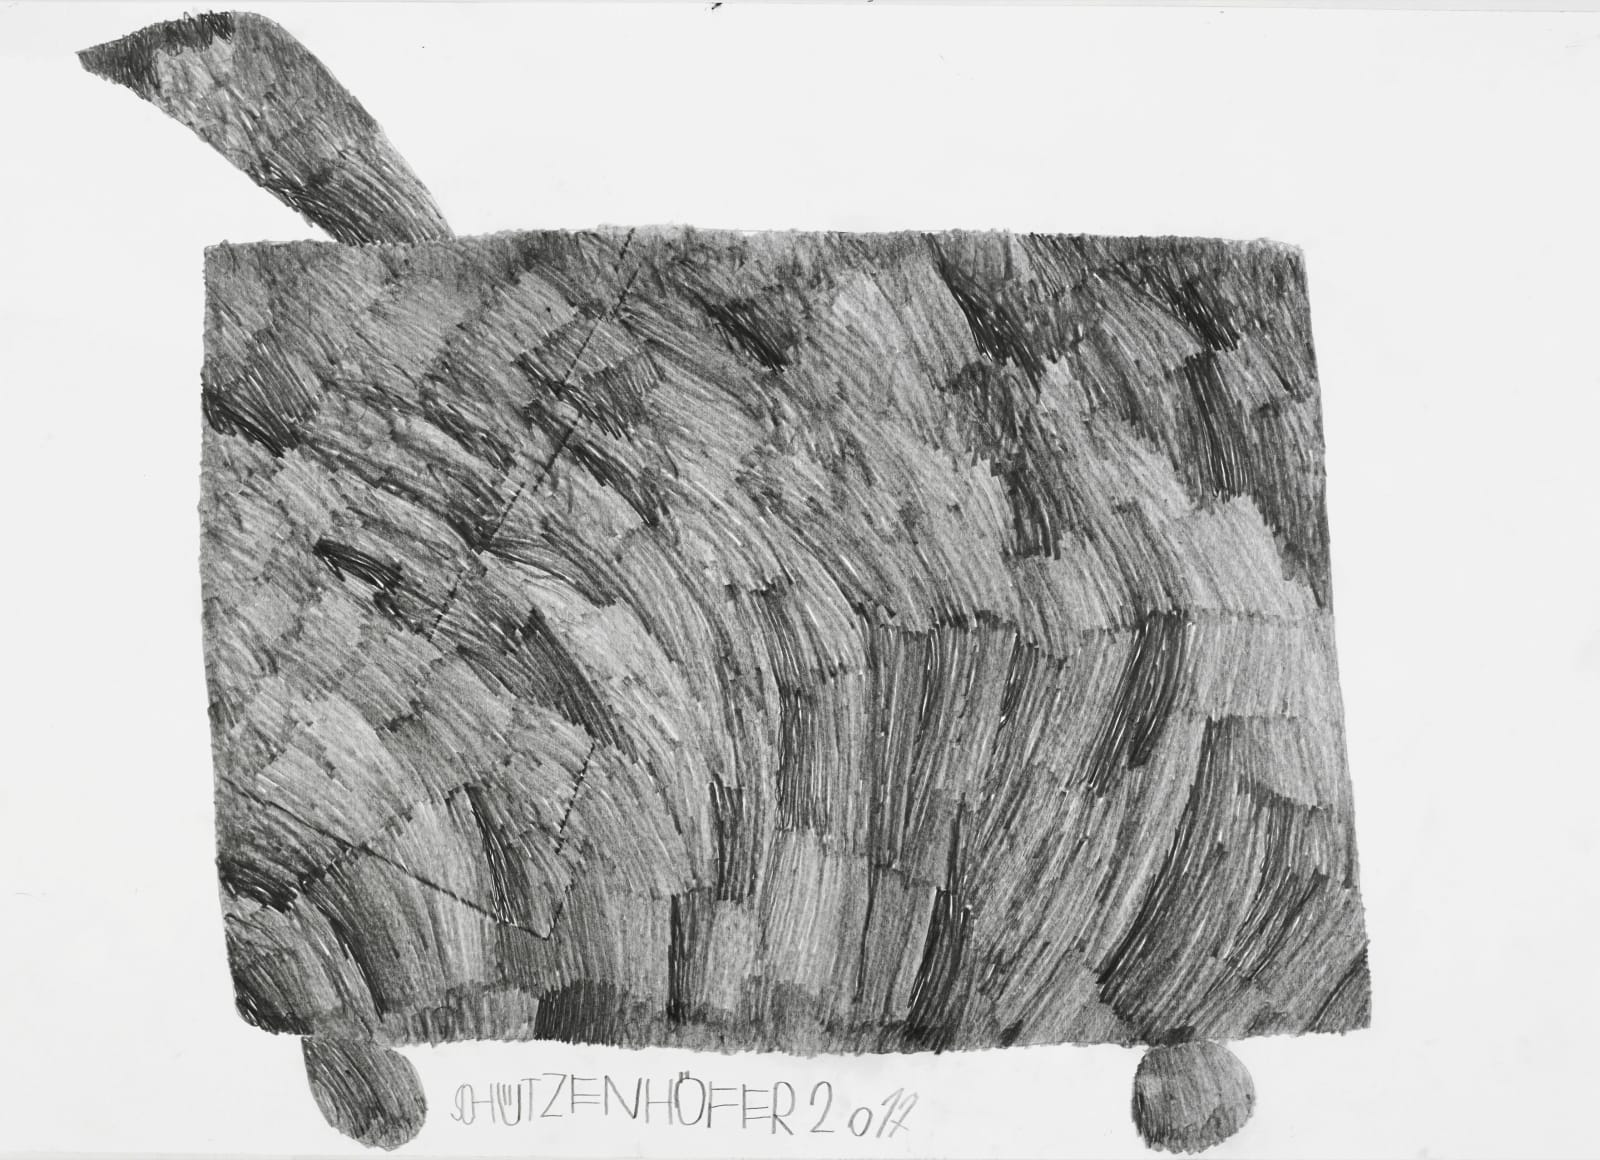 Grass cutter, 2017 Graphite on paper 19.8 x 27.6 in. (50.2 x 70.1 cm.) (GSG 109) SOLD